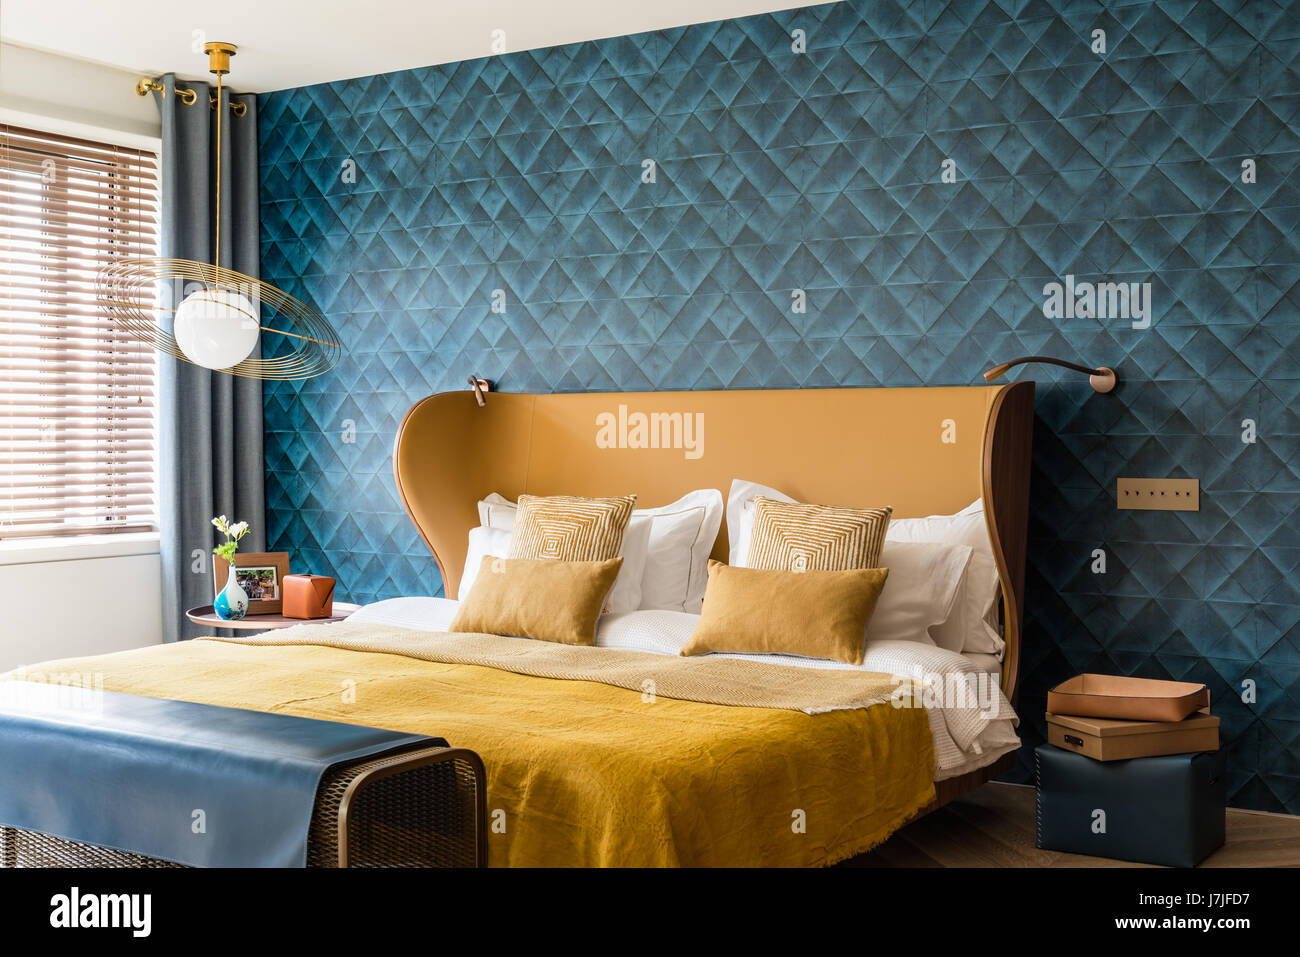 Saturno hanging light beside modernist style bed with vintage linen throws - Stock Image